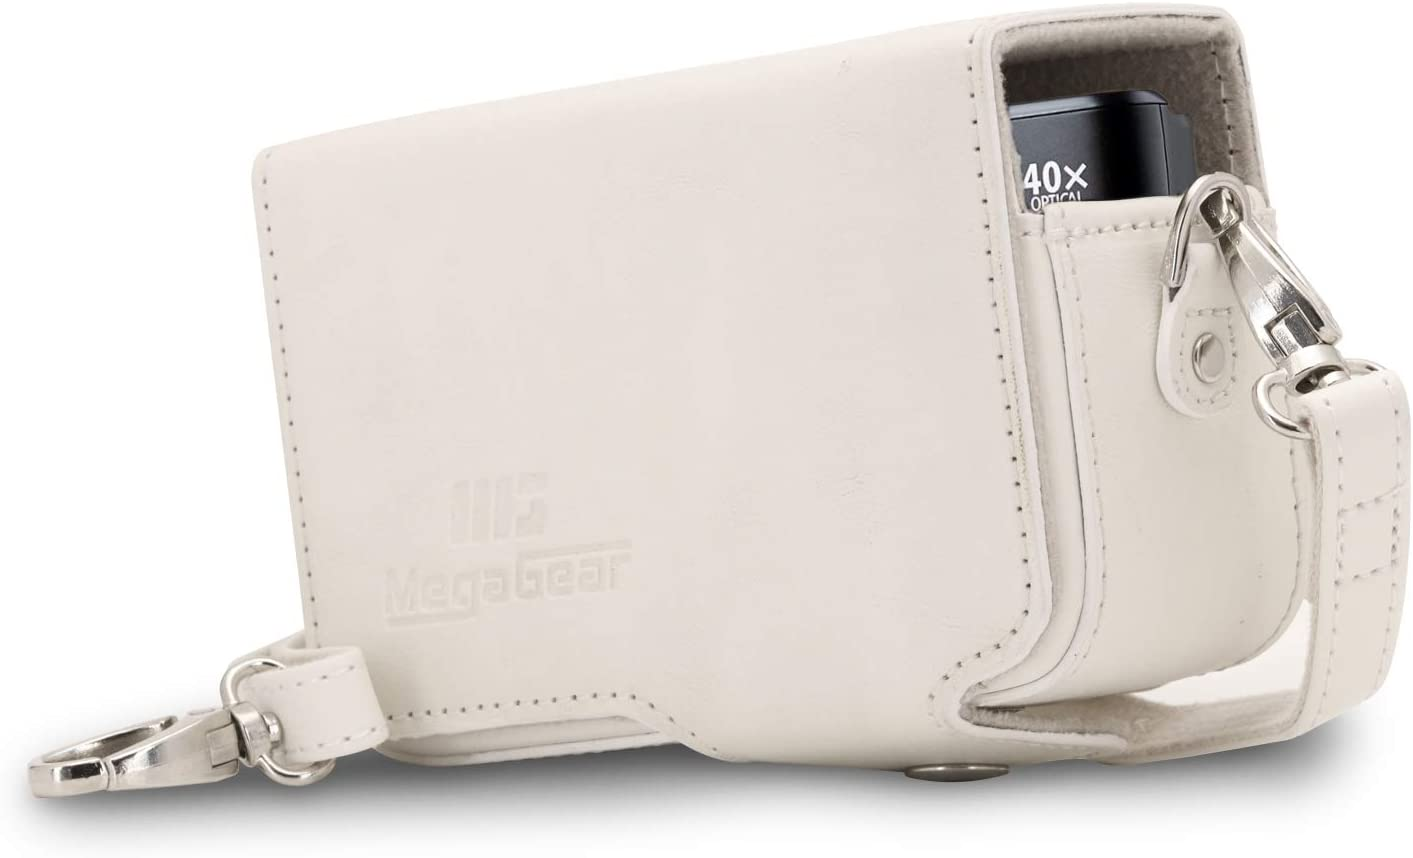 MegaGear Leather Camera Case with Strap compatible with Canon PowerShot SX740 HS SX730 HS